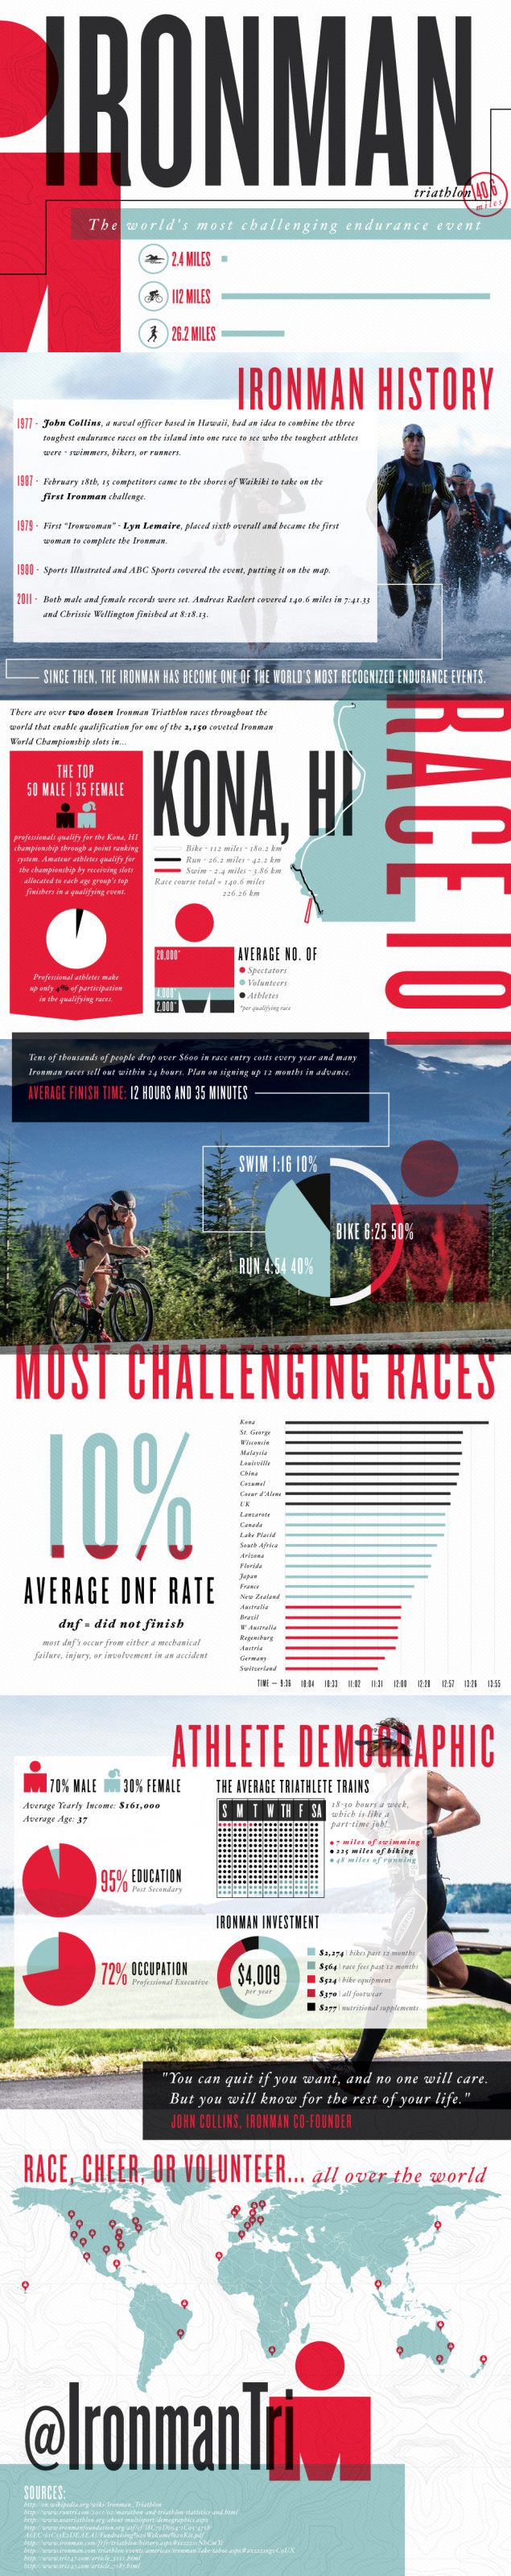 Ironman Triathlon Infographic | Lemonly